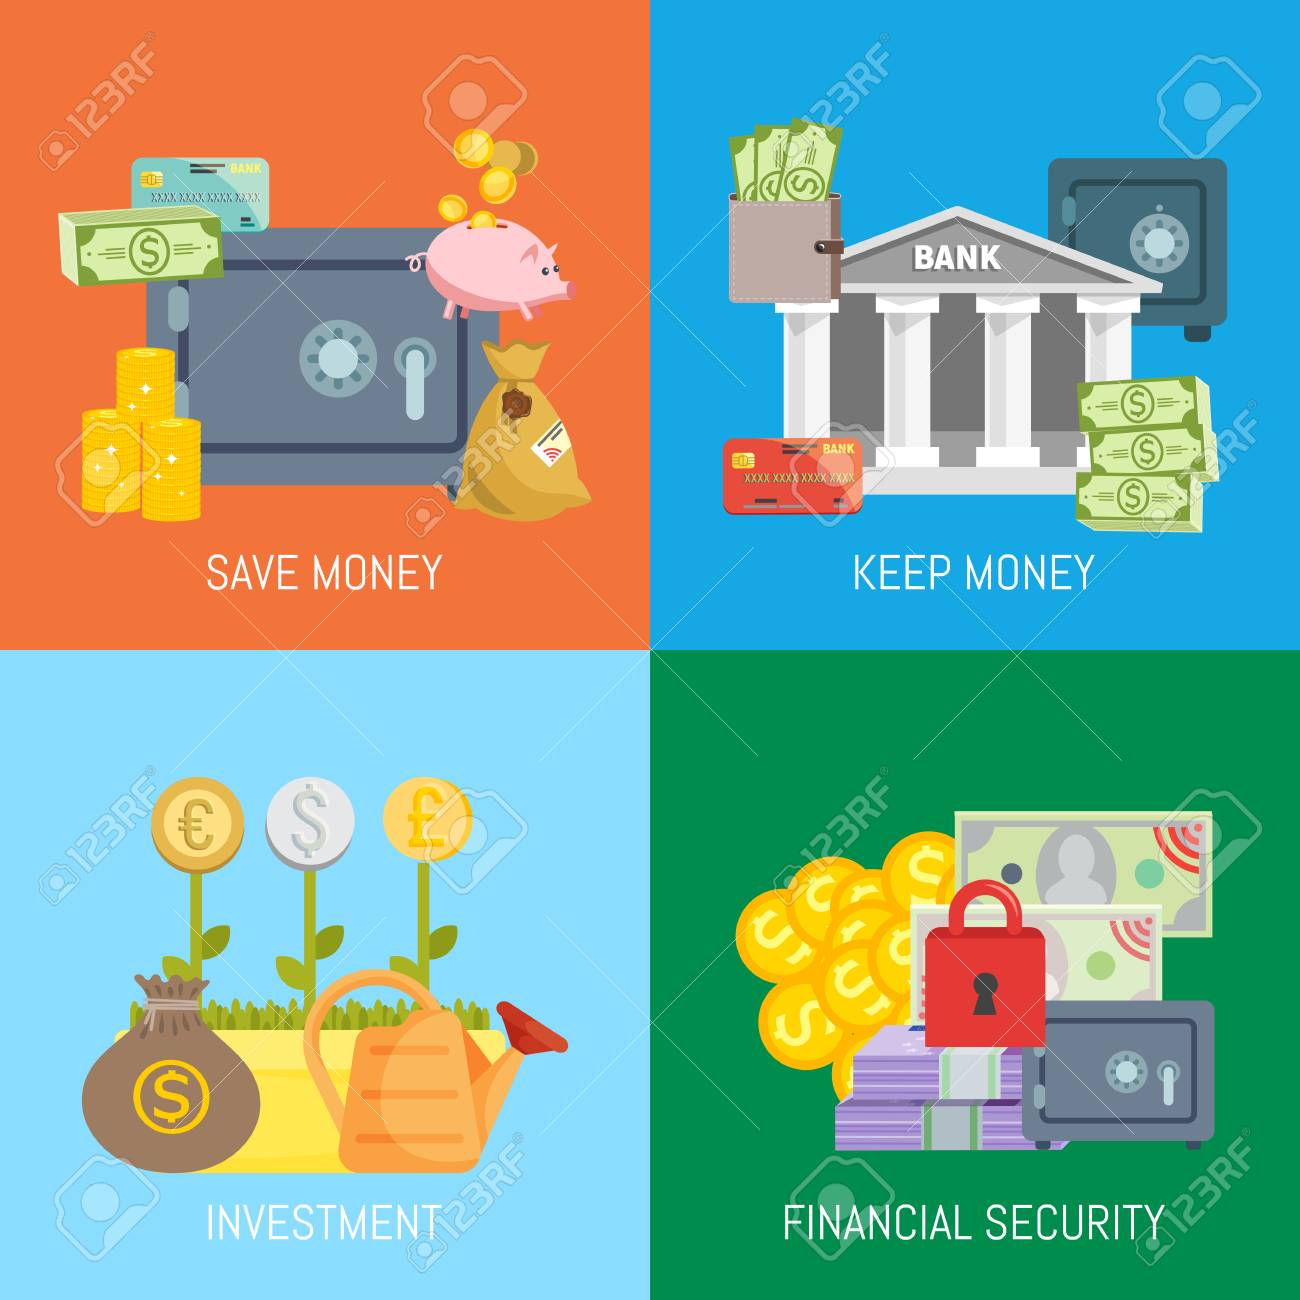 Efinance investments securities midf amanah investment bank berhad career counseling